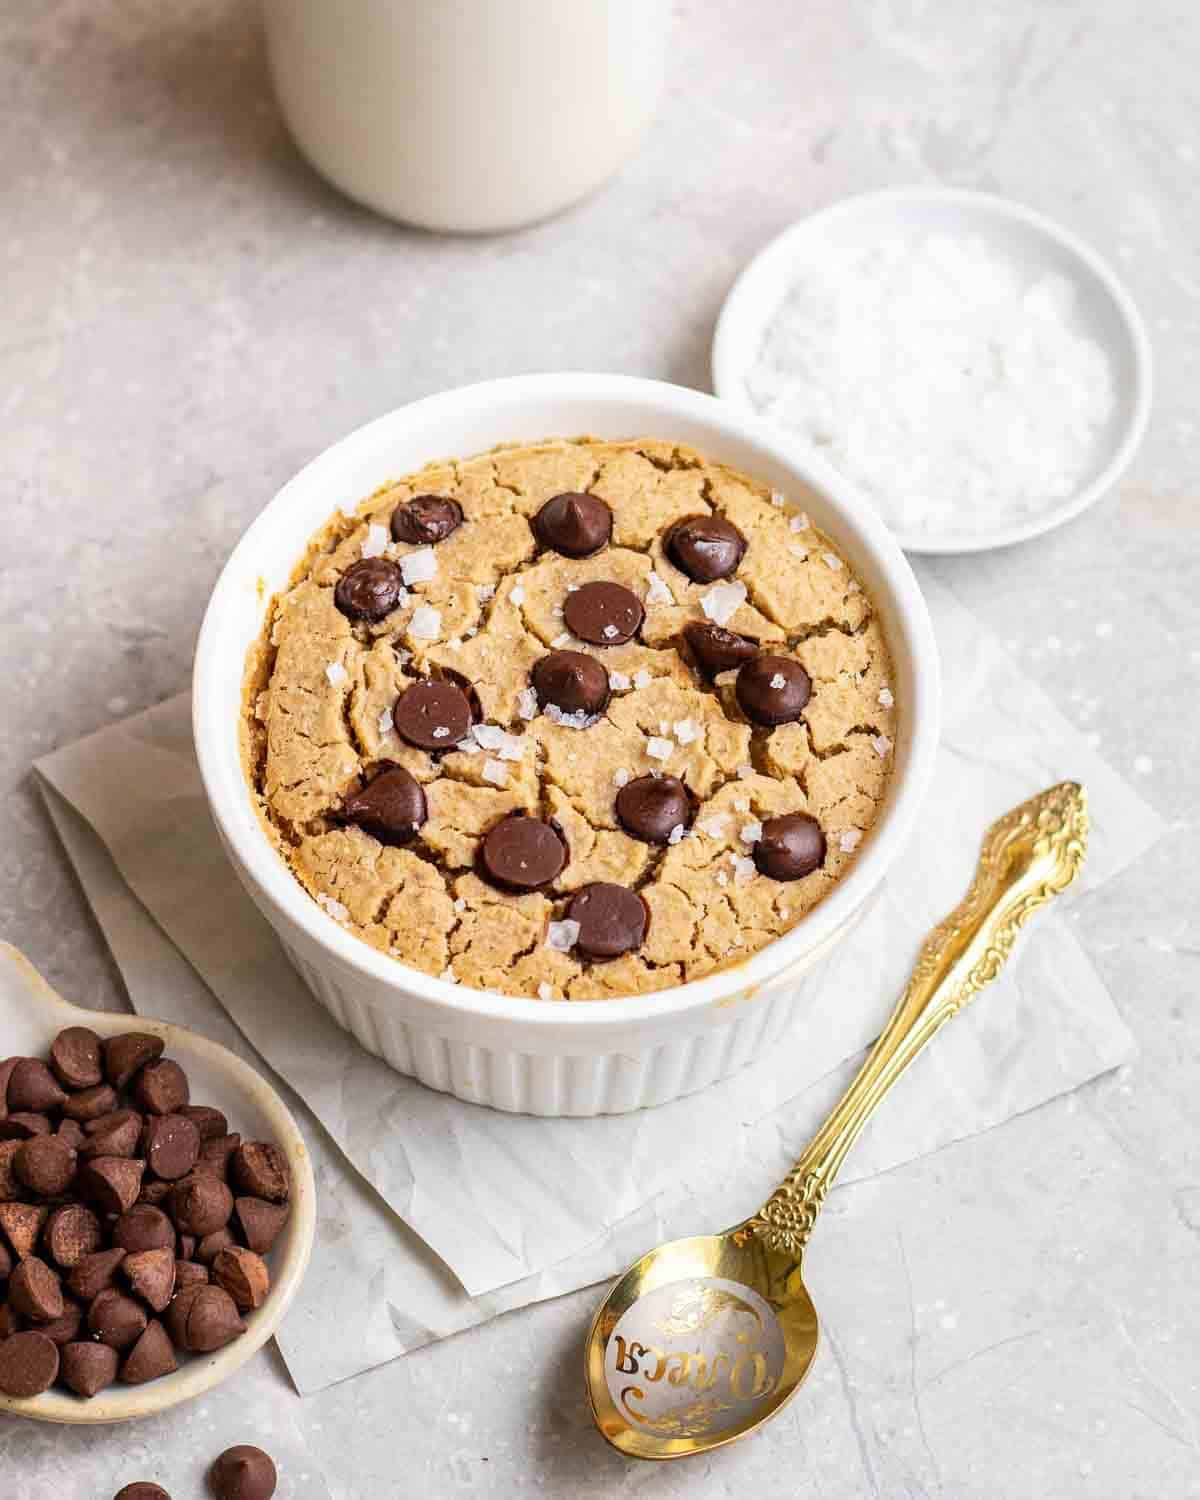 Baked oats in a white ramekin with spoon, chocolate chips, salt flakes and a jar of milk in the background.